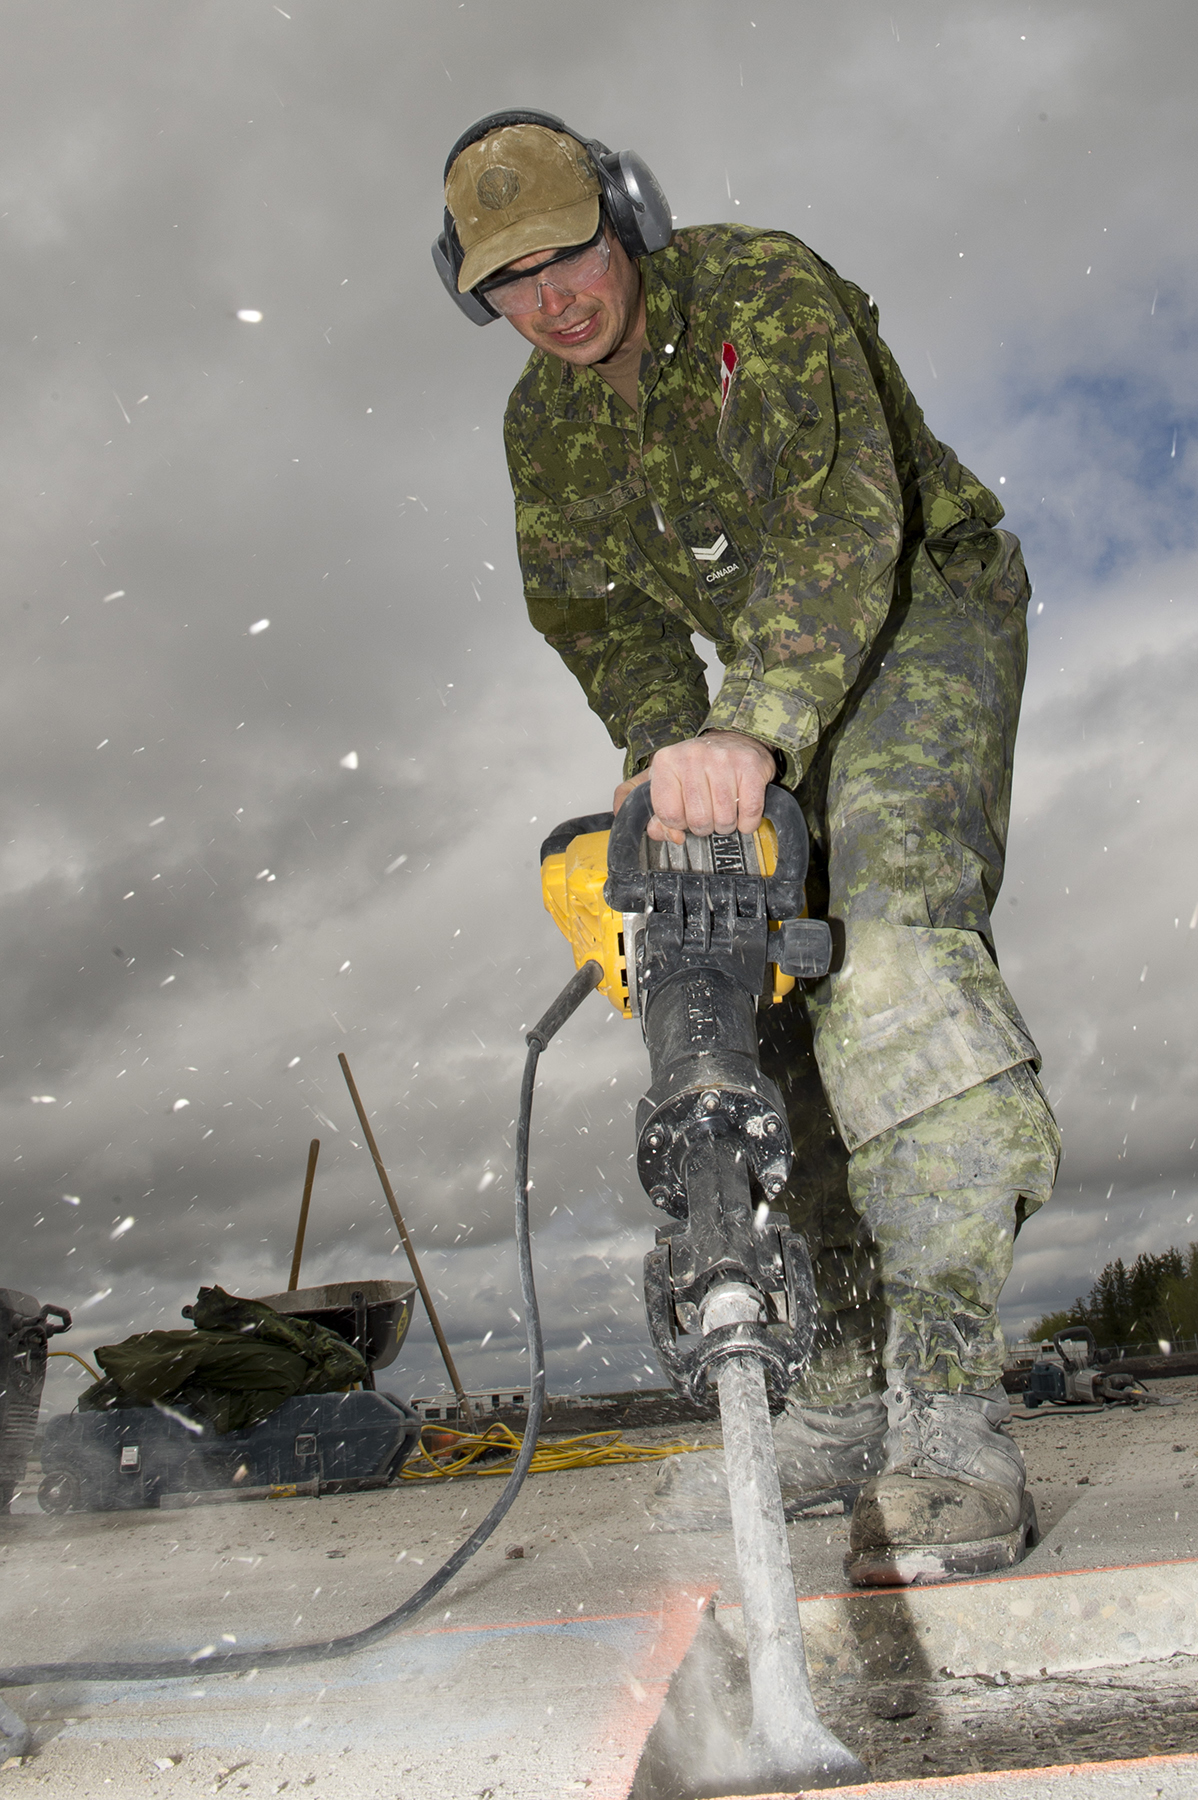 A man in a green camouflage uniform uses a jackhammer to remove concrete.